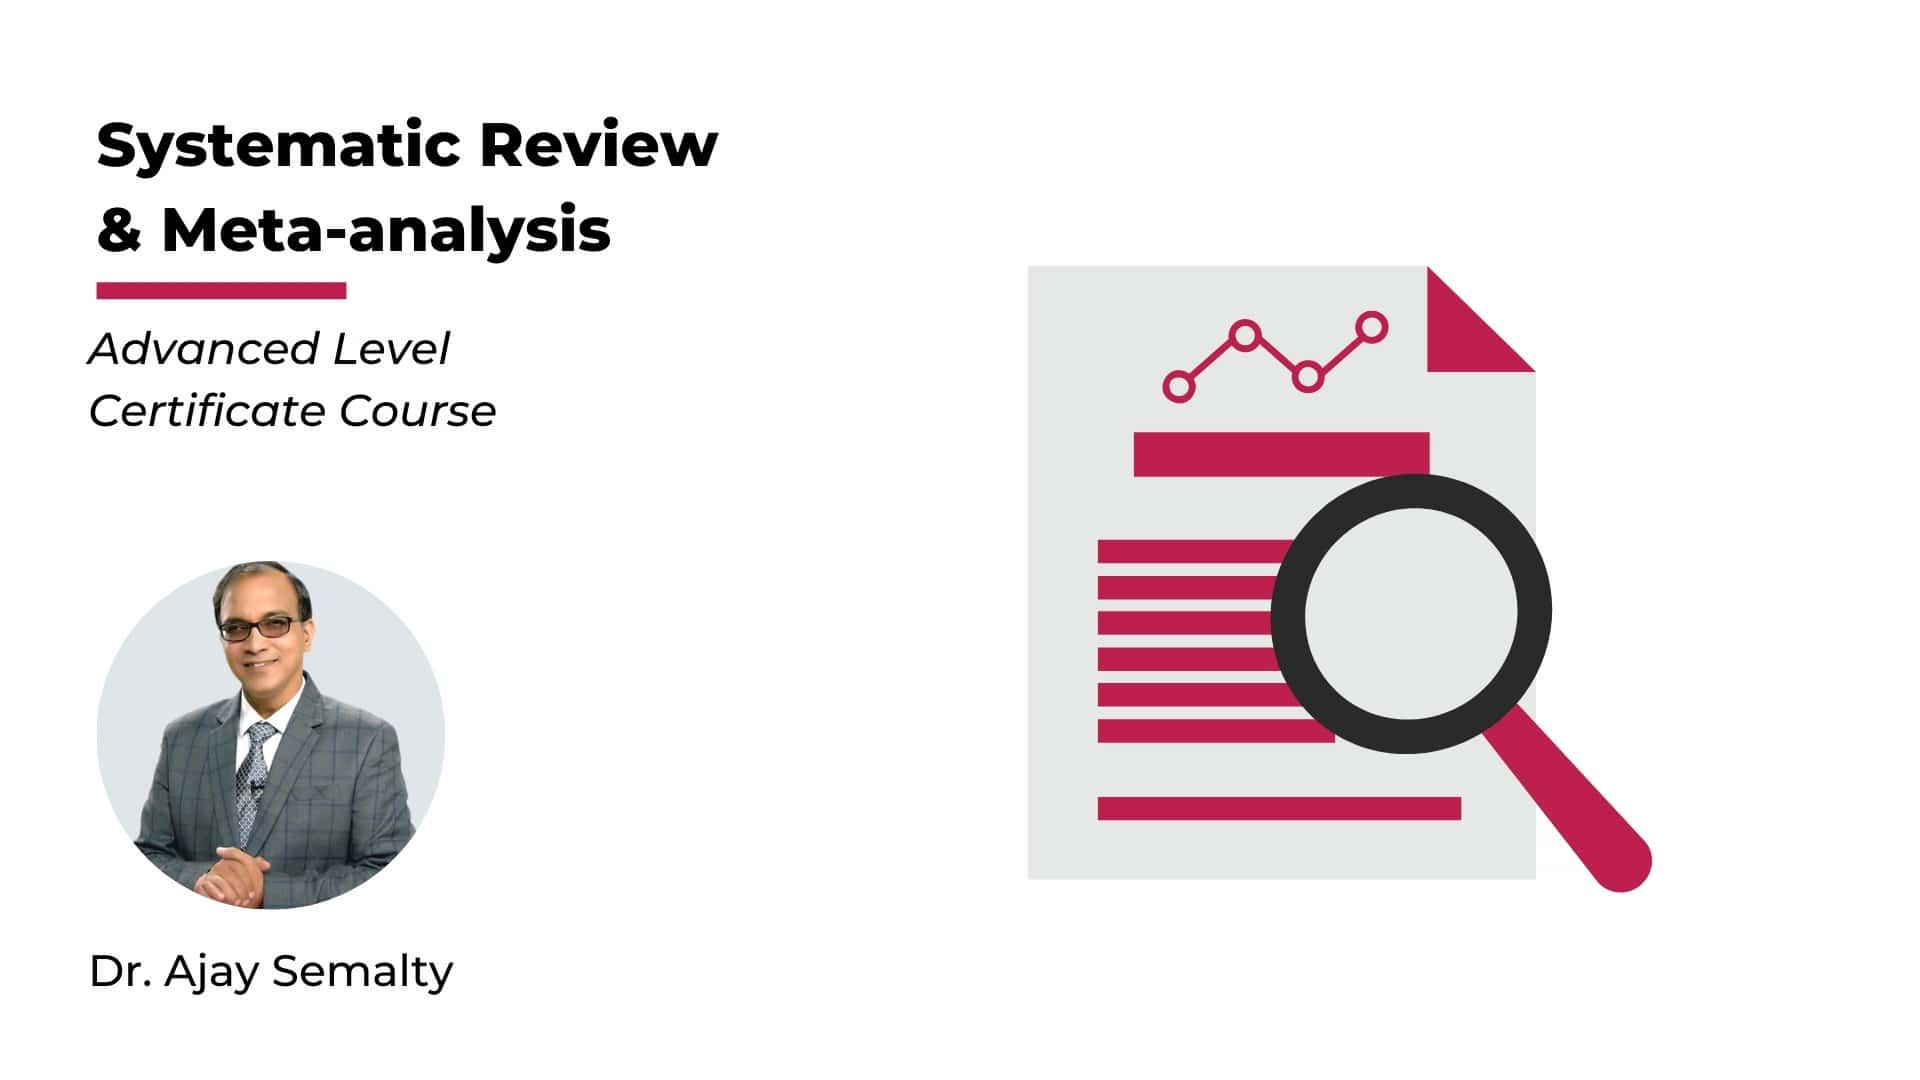 Systemetic Review and Meta Analysis